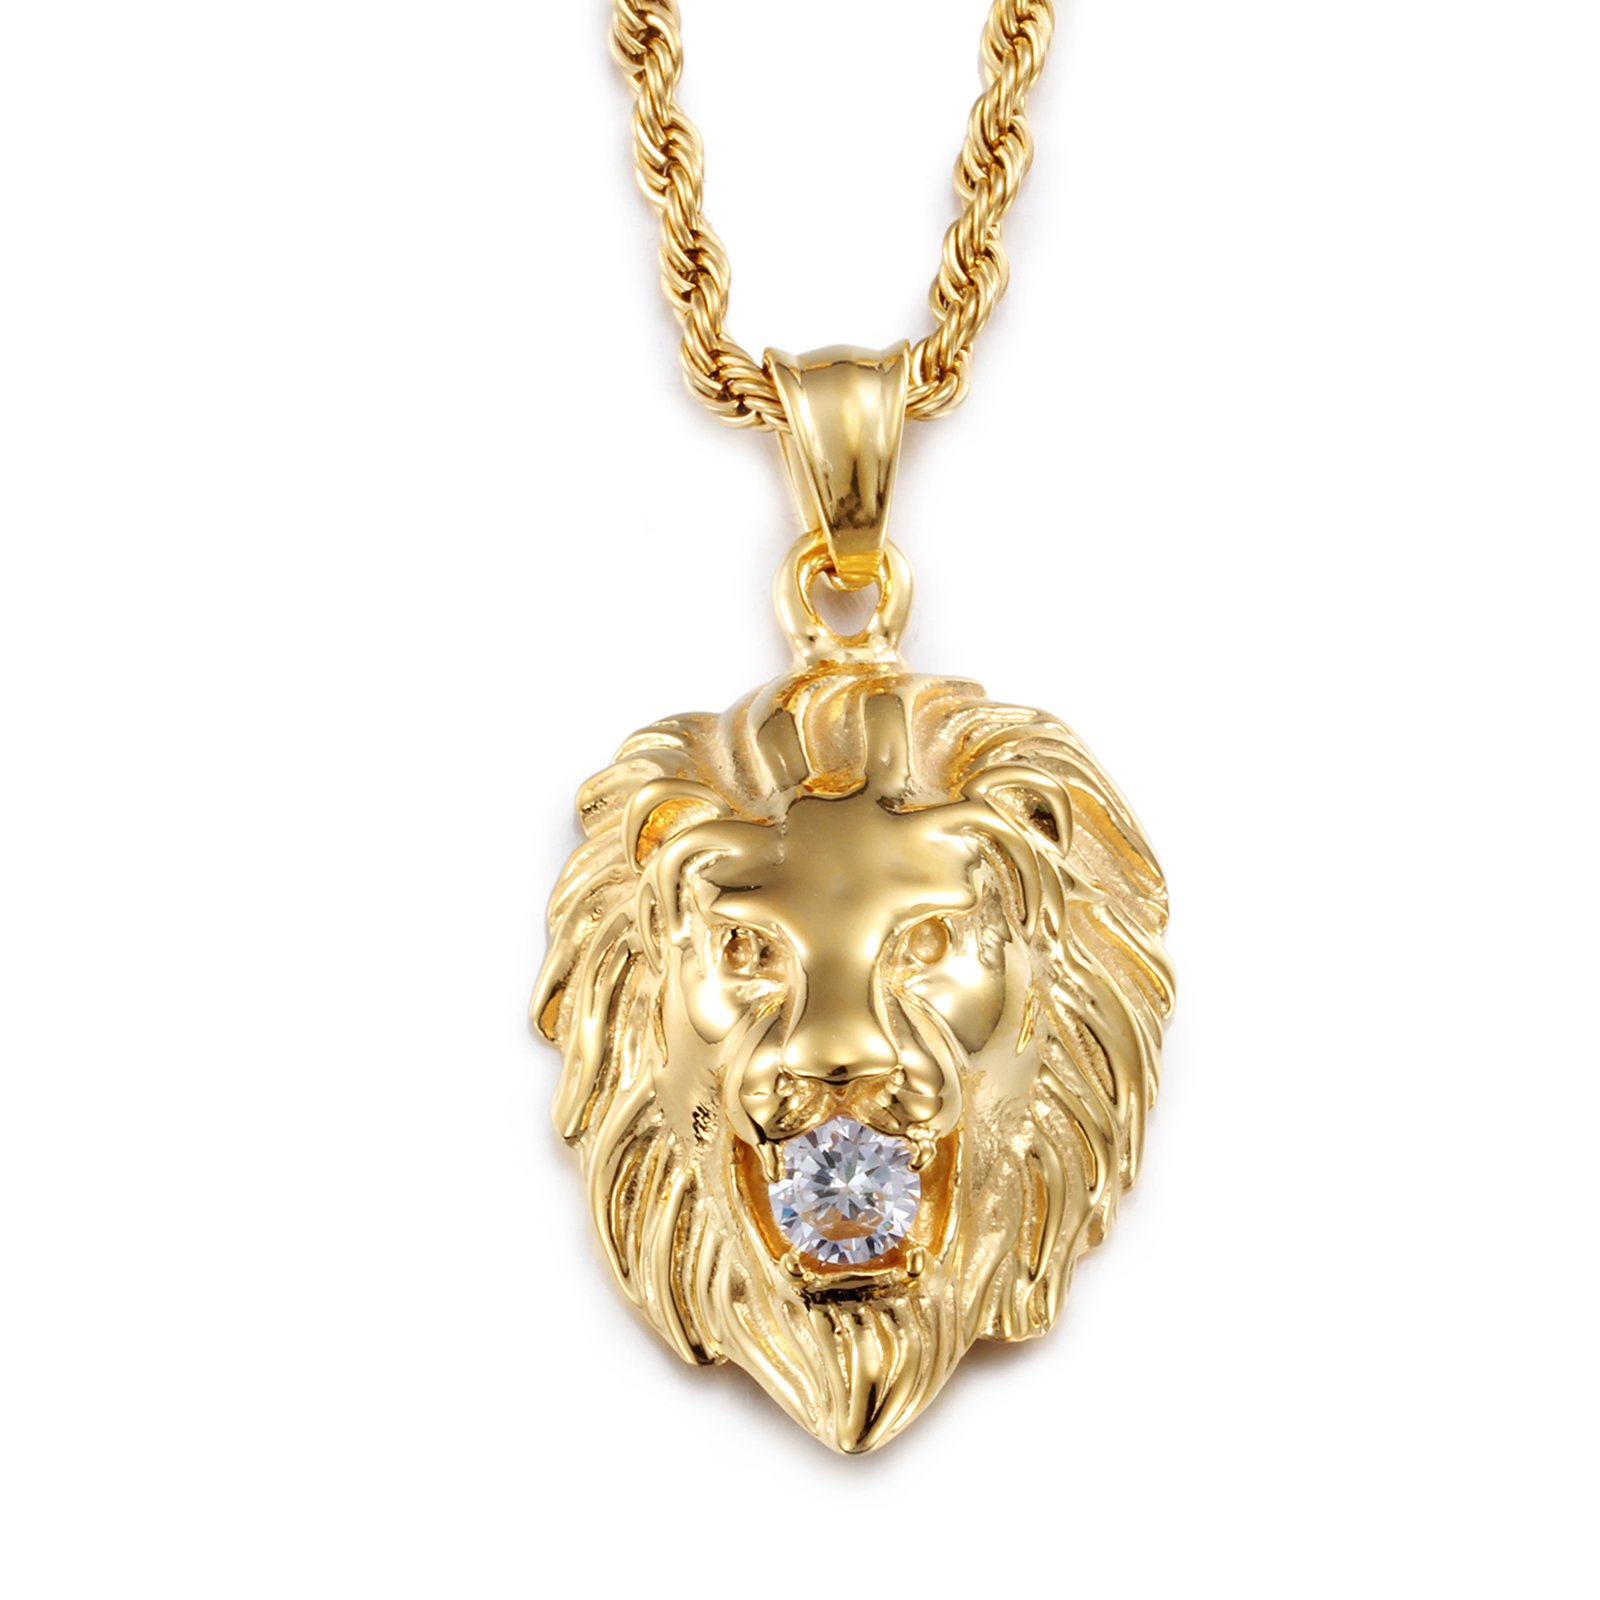 Vintage Men's 18K Gold Plated Stainless Steel Lion King Zodiac of Leo Cubic Zircon Chain Pendant Necklace